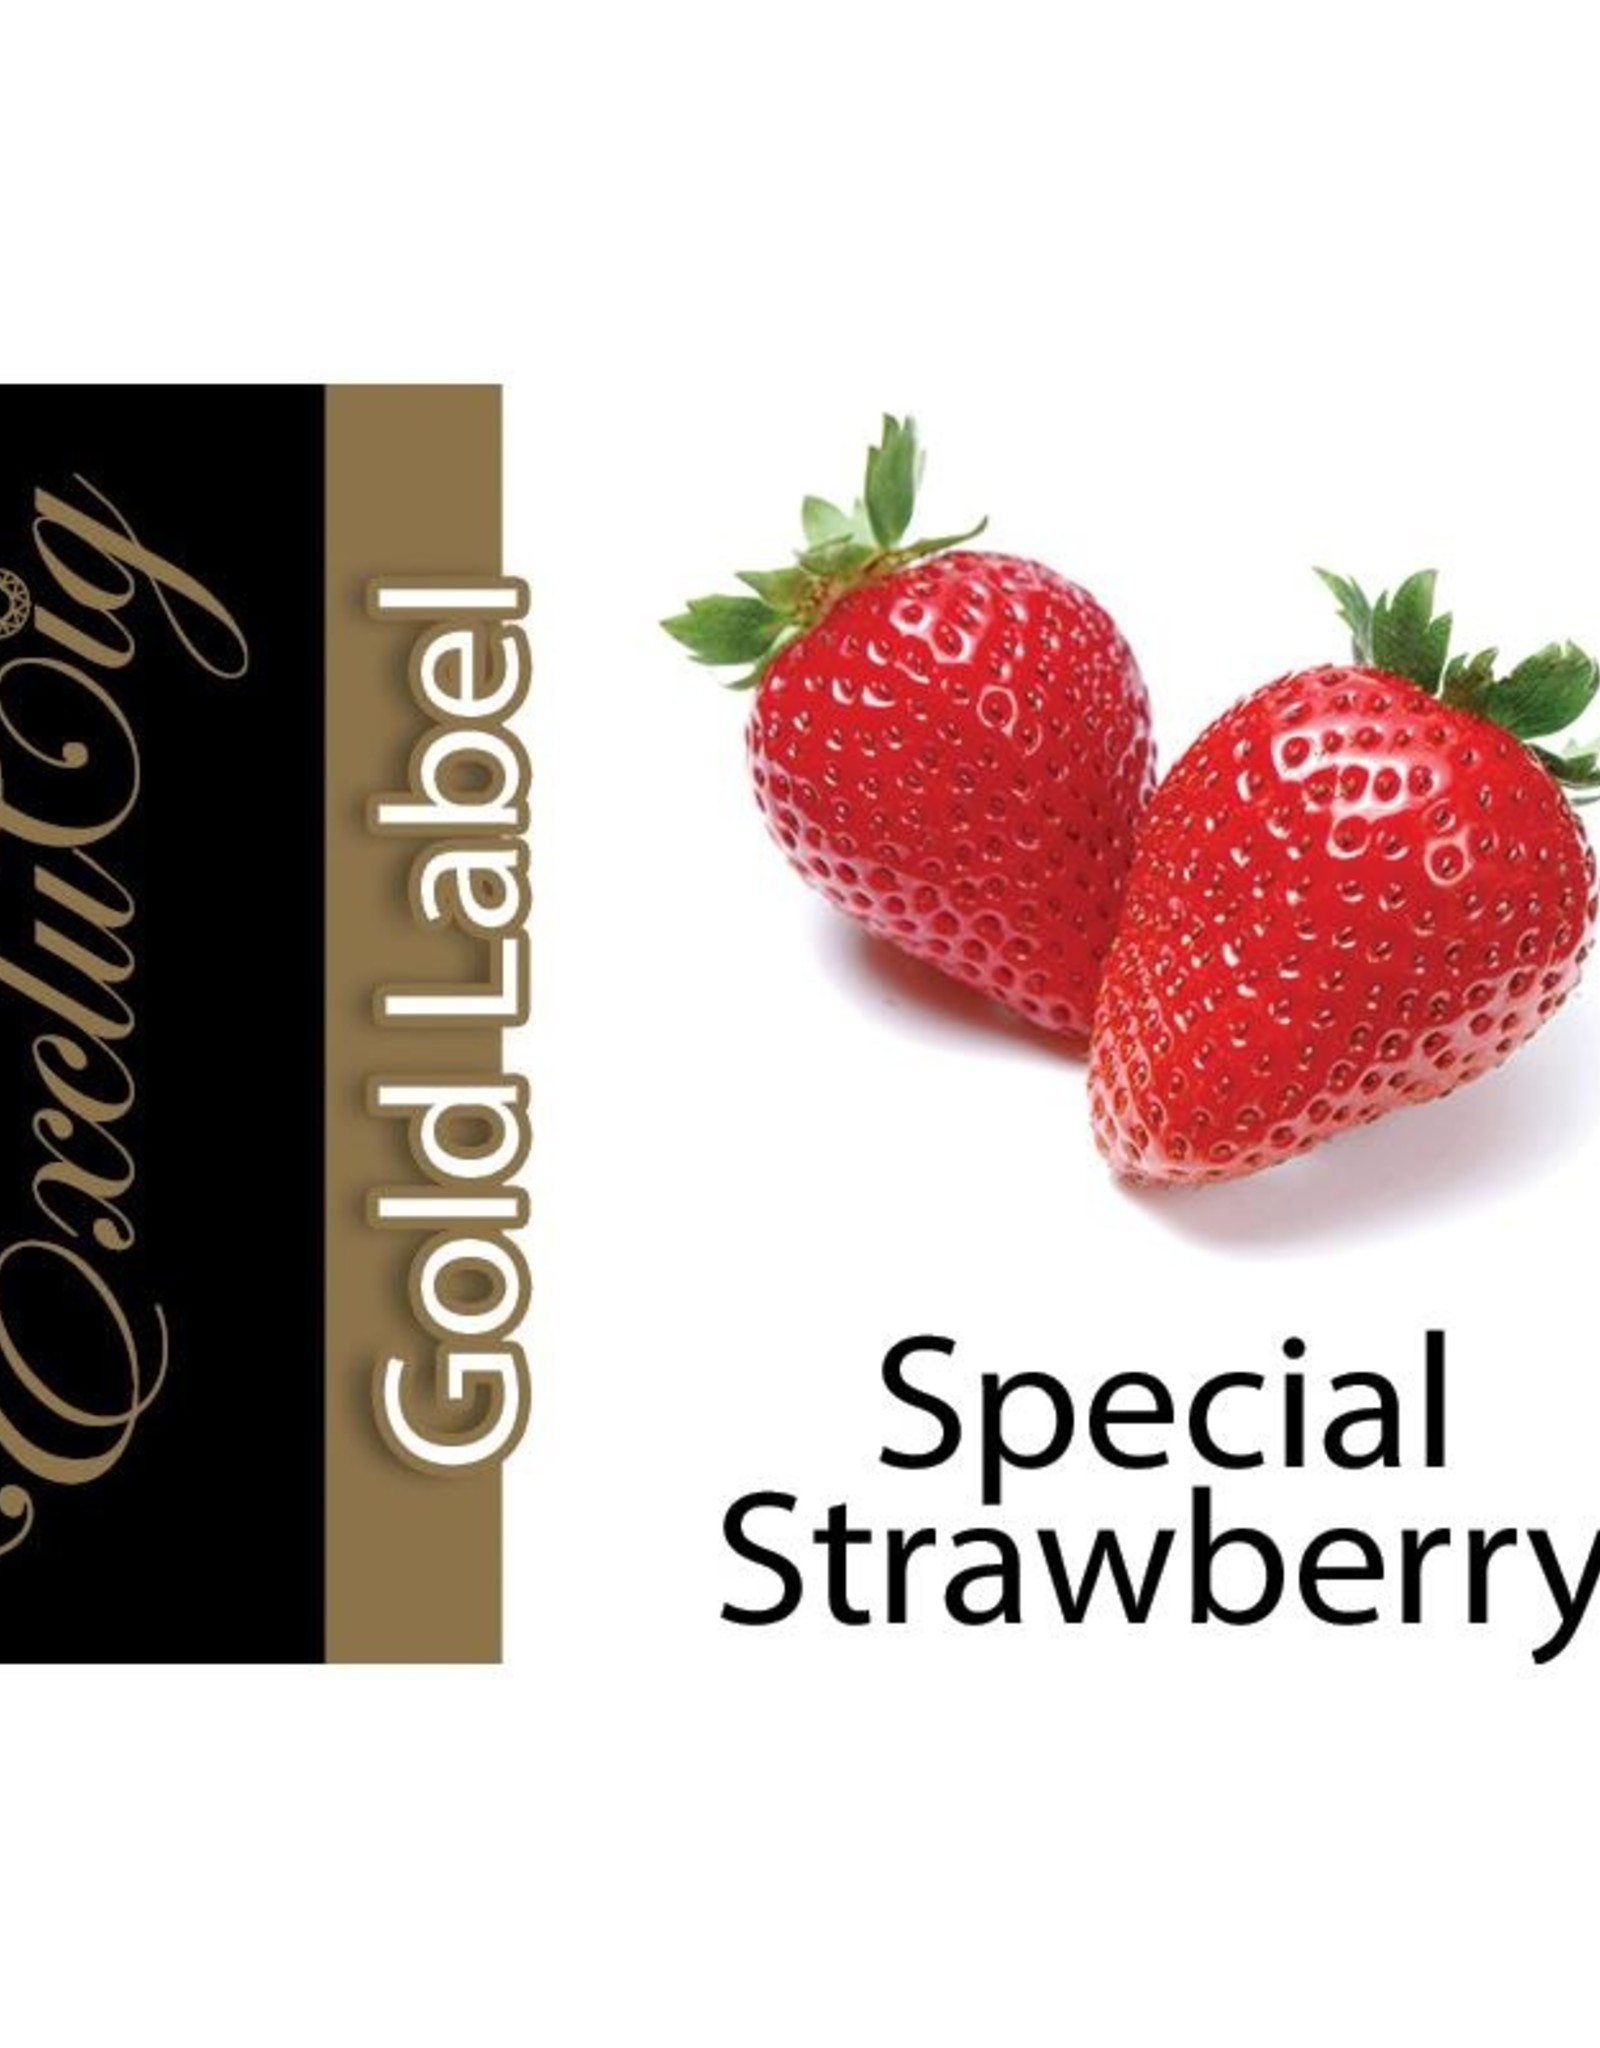 Exclucig Exclucig Gold Label E-liquid Special Strawberry 6 mg Nicotine